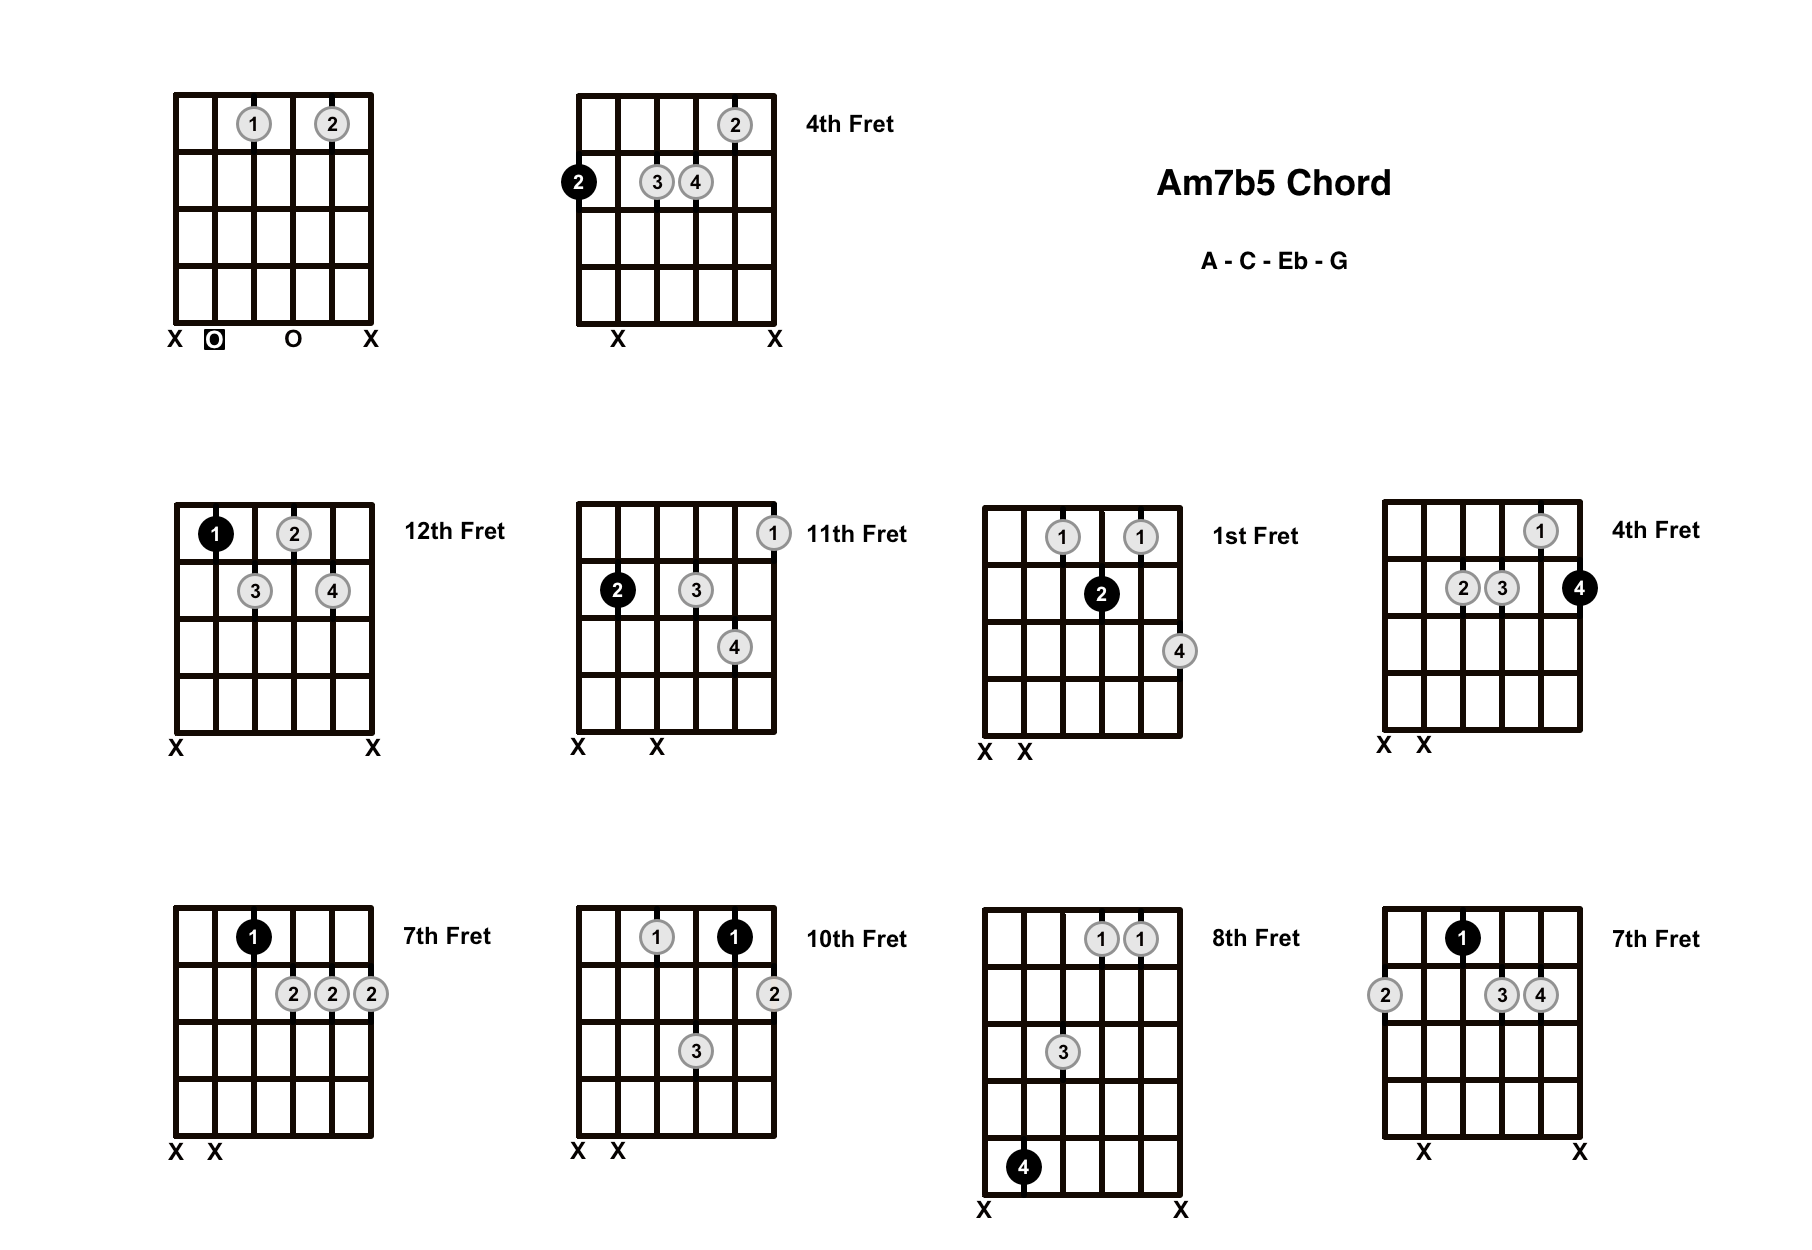 Am7b5 Chord On The Guitar (A Minor 7 Flat 5, A Half Diminished) – Diagrams, Finger Positions and Theory